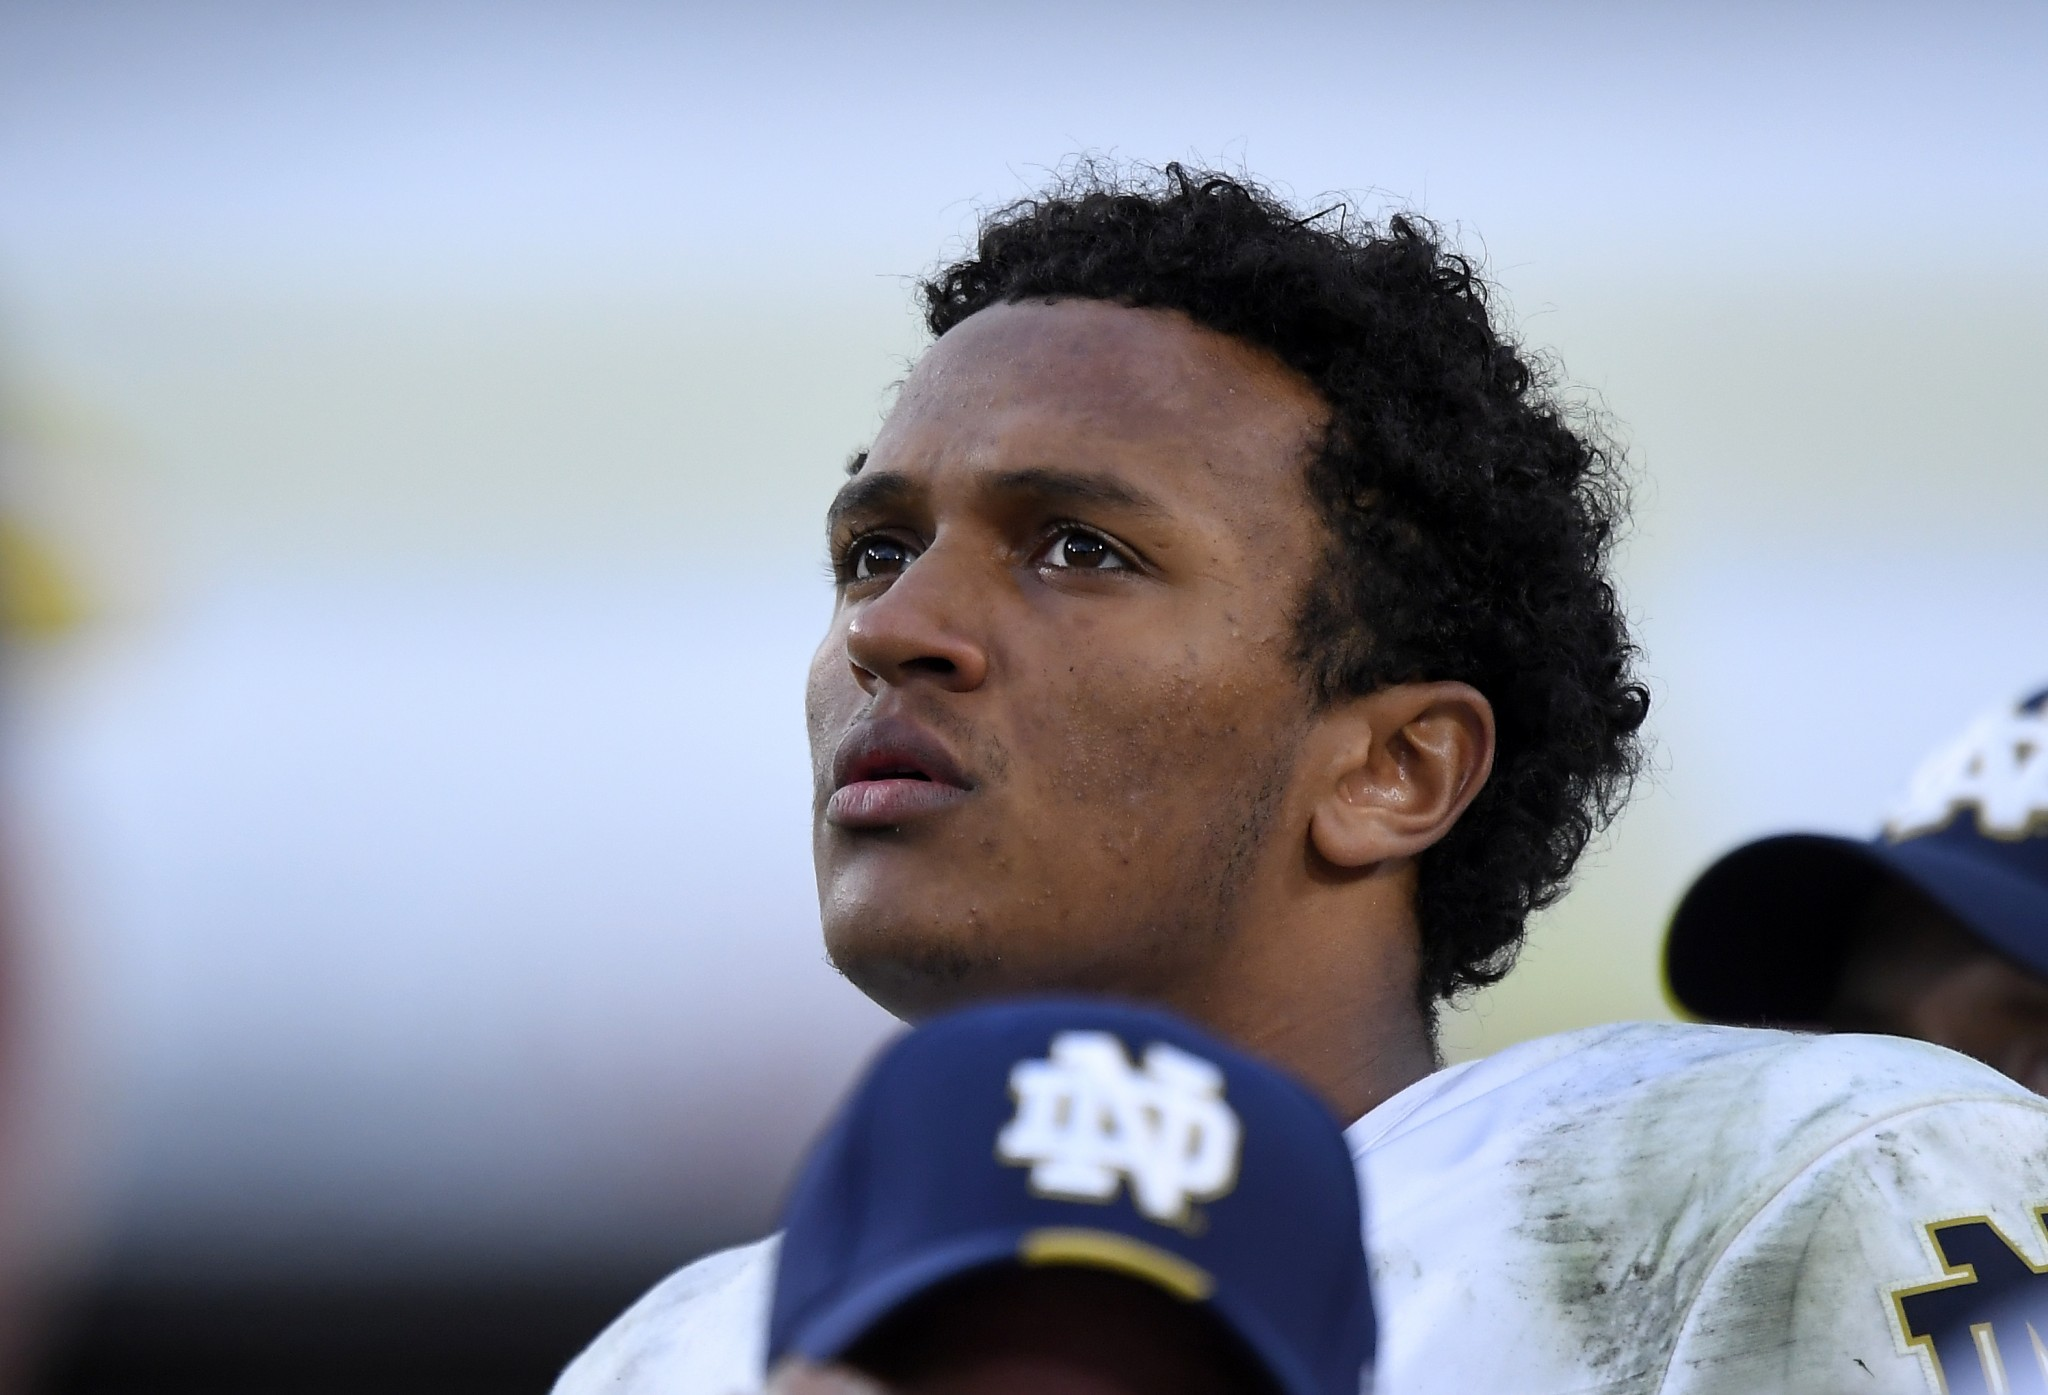 NFL draft profile: No. 28 —Notre Dame QB DeShone Kizer, lots to work with but still unpolished